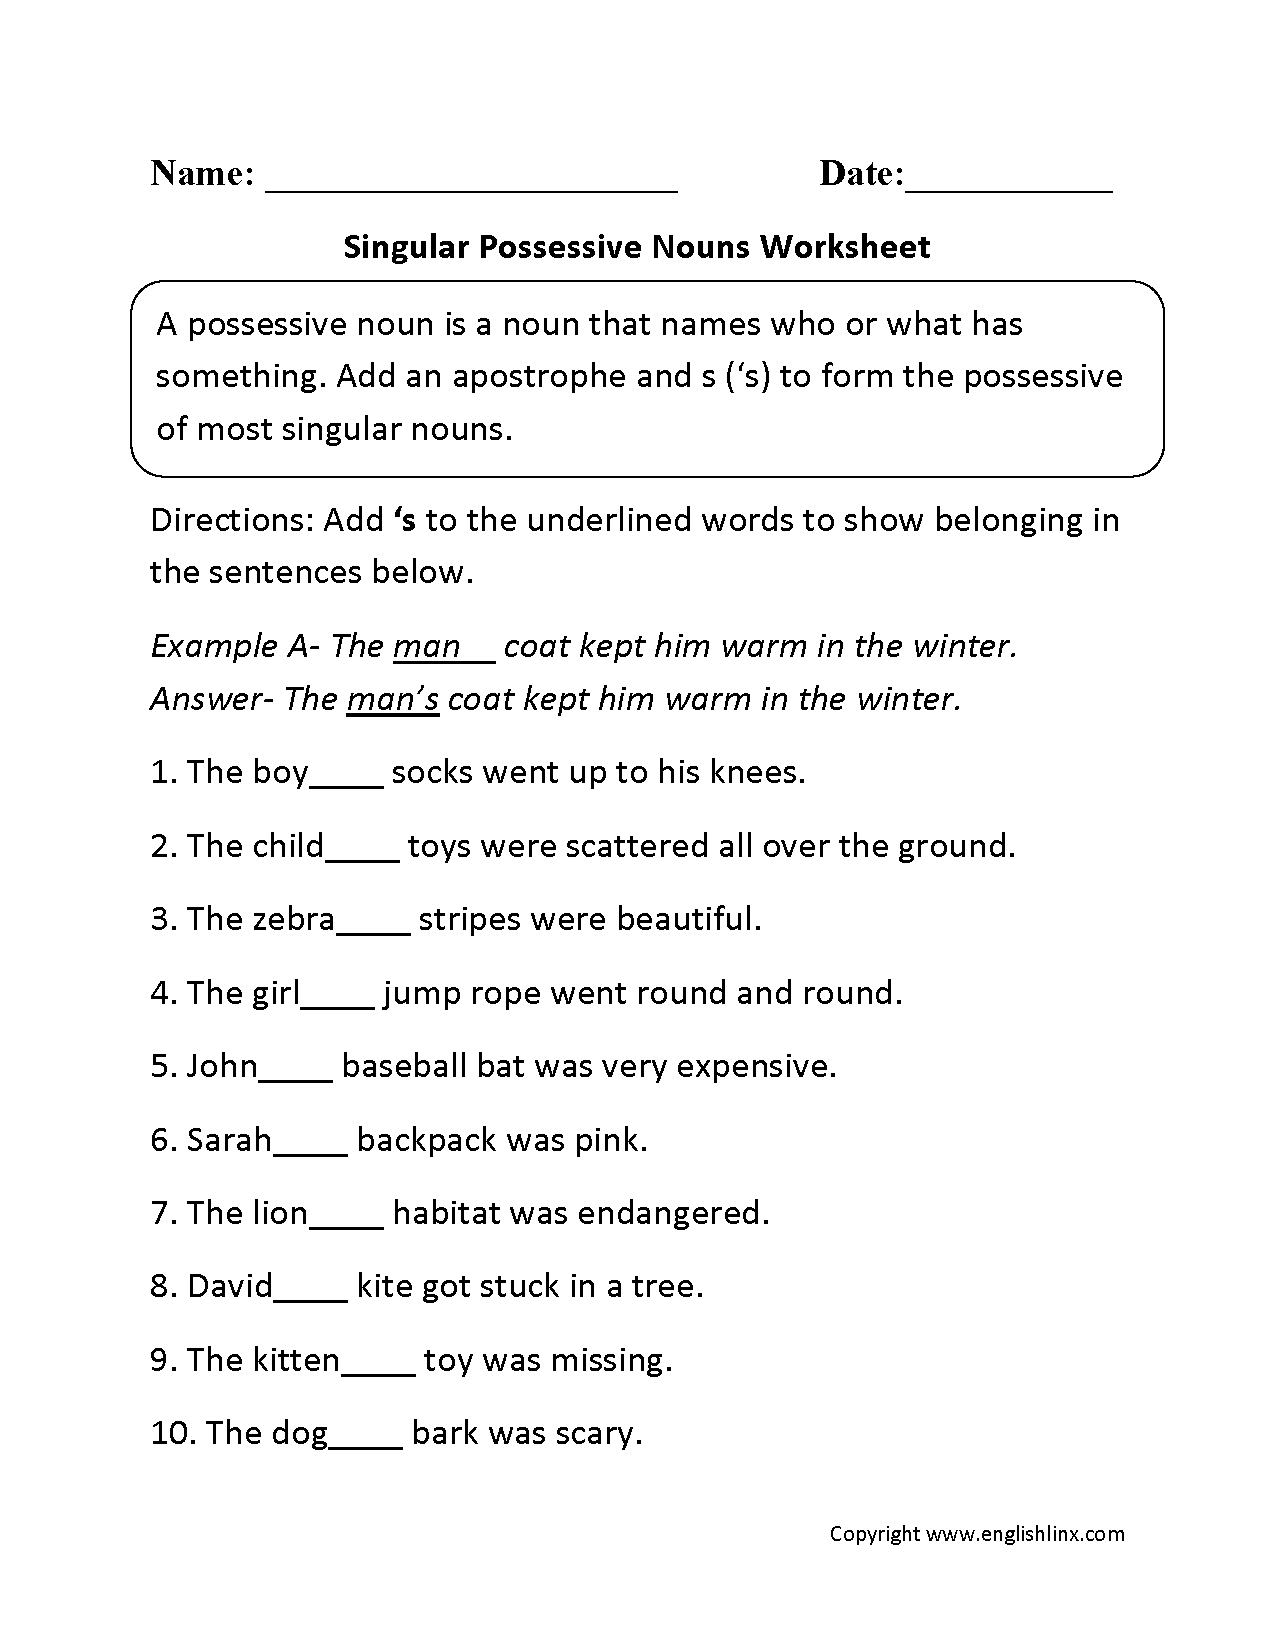 Aldiablosus  Nice Nouns Worksheets  Possessive Nouns Worksheets With Engaging Possessive Nouns Worksheets With Delectable Kinder Sight Word Worksheets Also Time Line Worksheet In Addition Trigonometric Ratios Worksheets And Teacher Reading Worksheets As Well As Grammar Worksheets For Kindergarten Additionally Nh Child Support Guidelines Worksheet From Englishlinxcom With Aldiablosus  Engaging Nouns Worksheets  Possessive Nouns Worksheets With Delectable Possessive Nouns Worksheets And Nice Kinder Sight Word Worksheets Also Time Line Worksheet In Addition Trigonometric Ratios Worksheets From Englishlinxcom